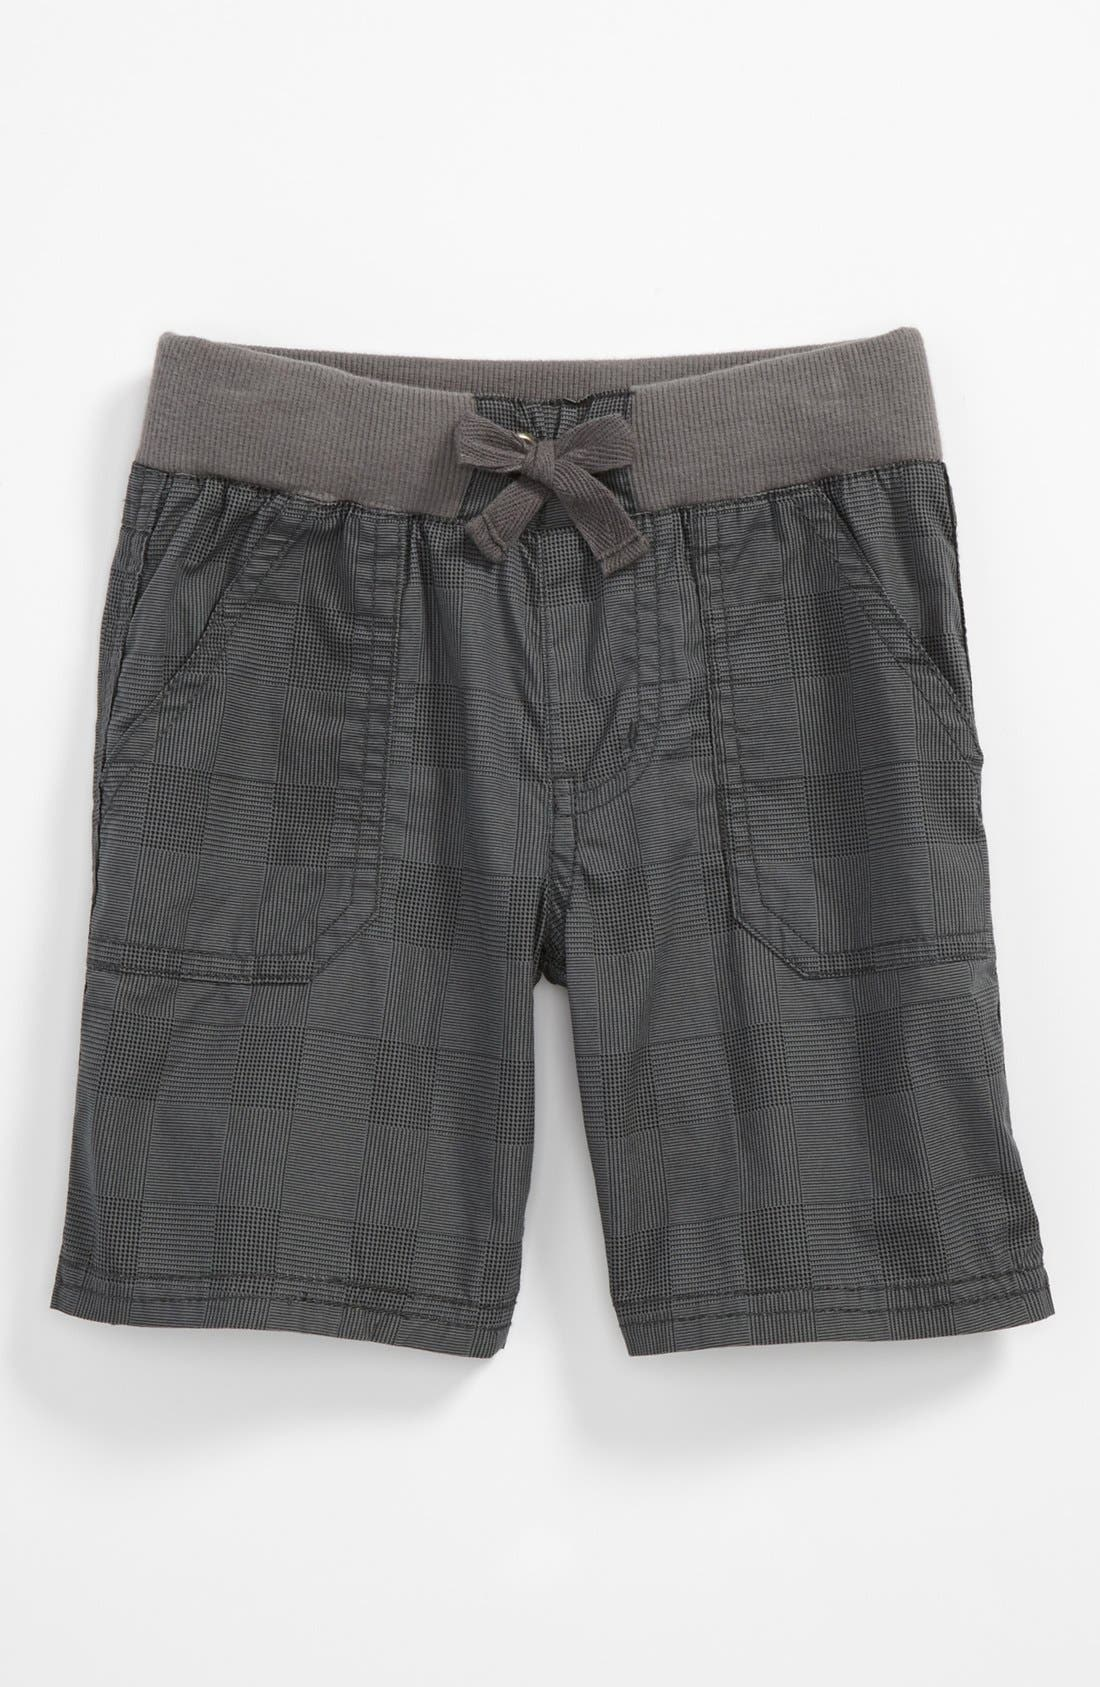 Alternate Image 1 Selected - Pumpkin Patch Check Shorts (Toddler)